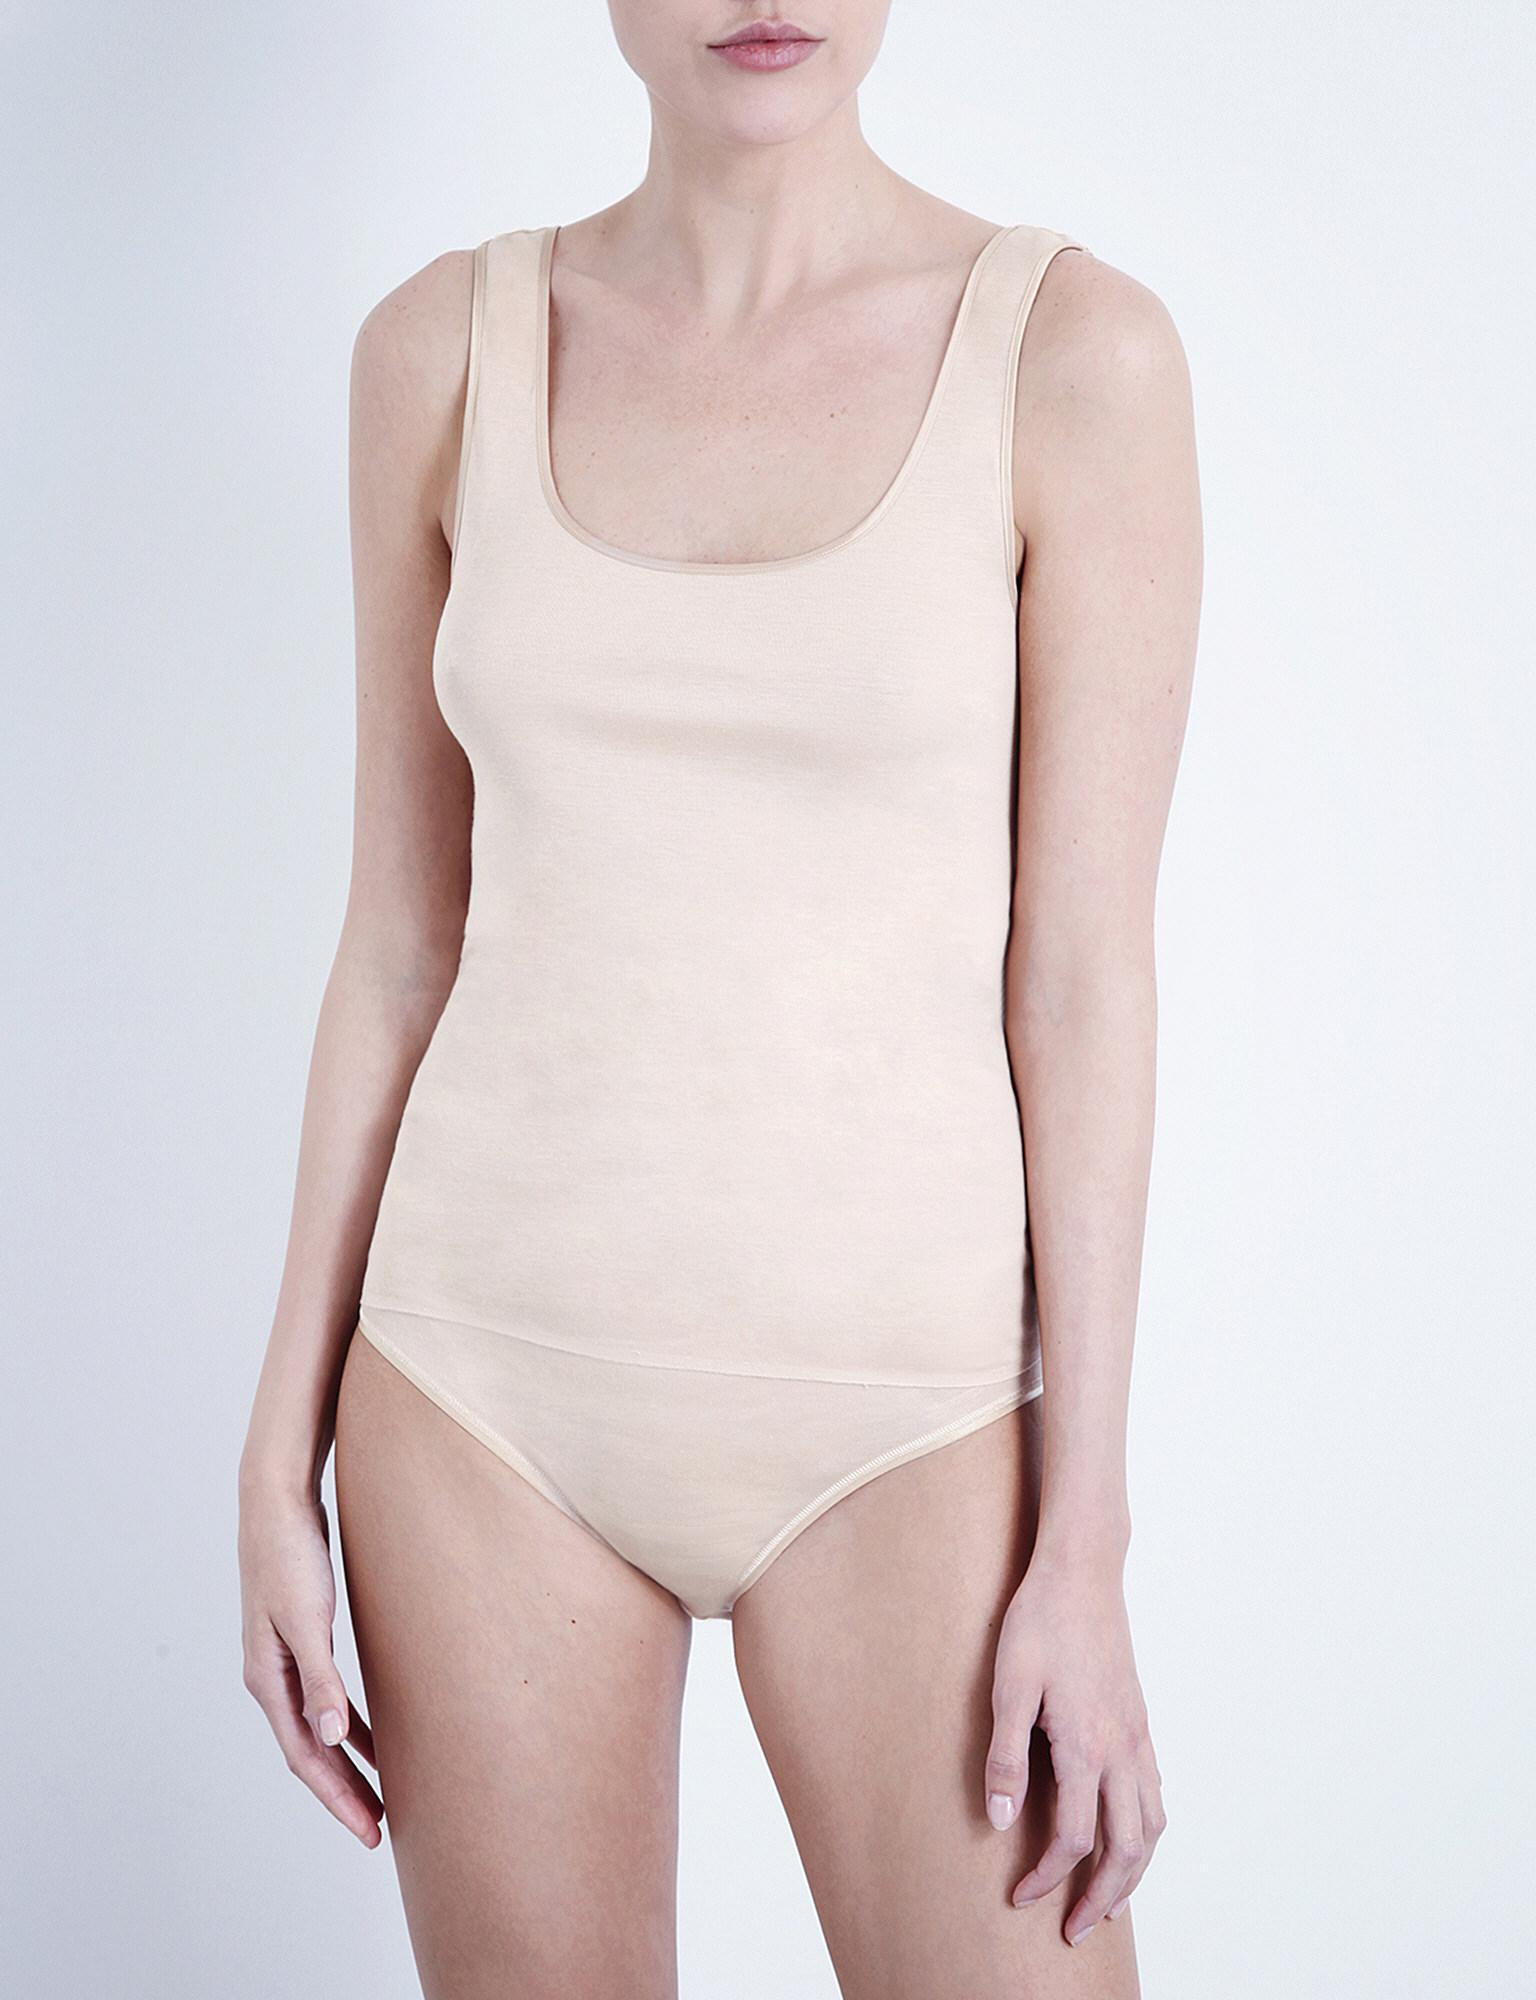 be225a87ae6ed Hanro Seamless Cotton Vest Top in White - Lyst